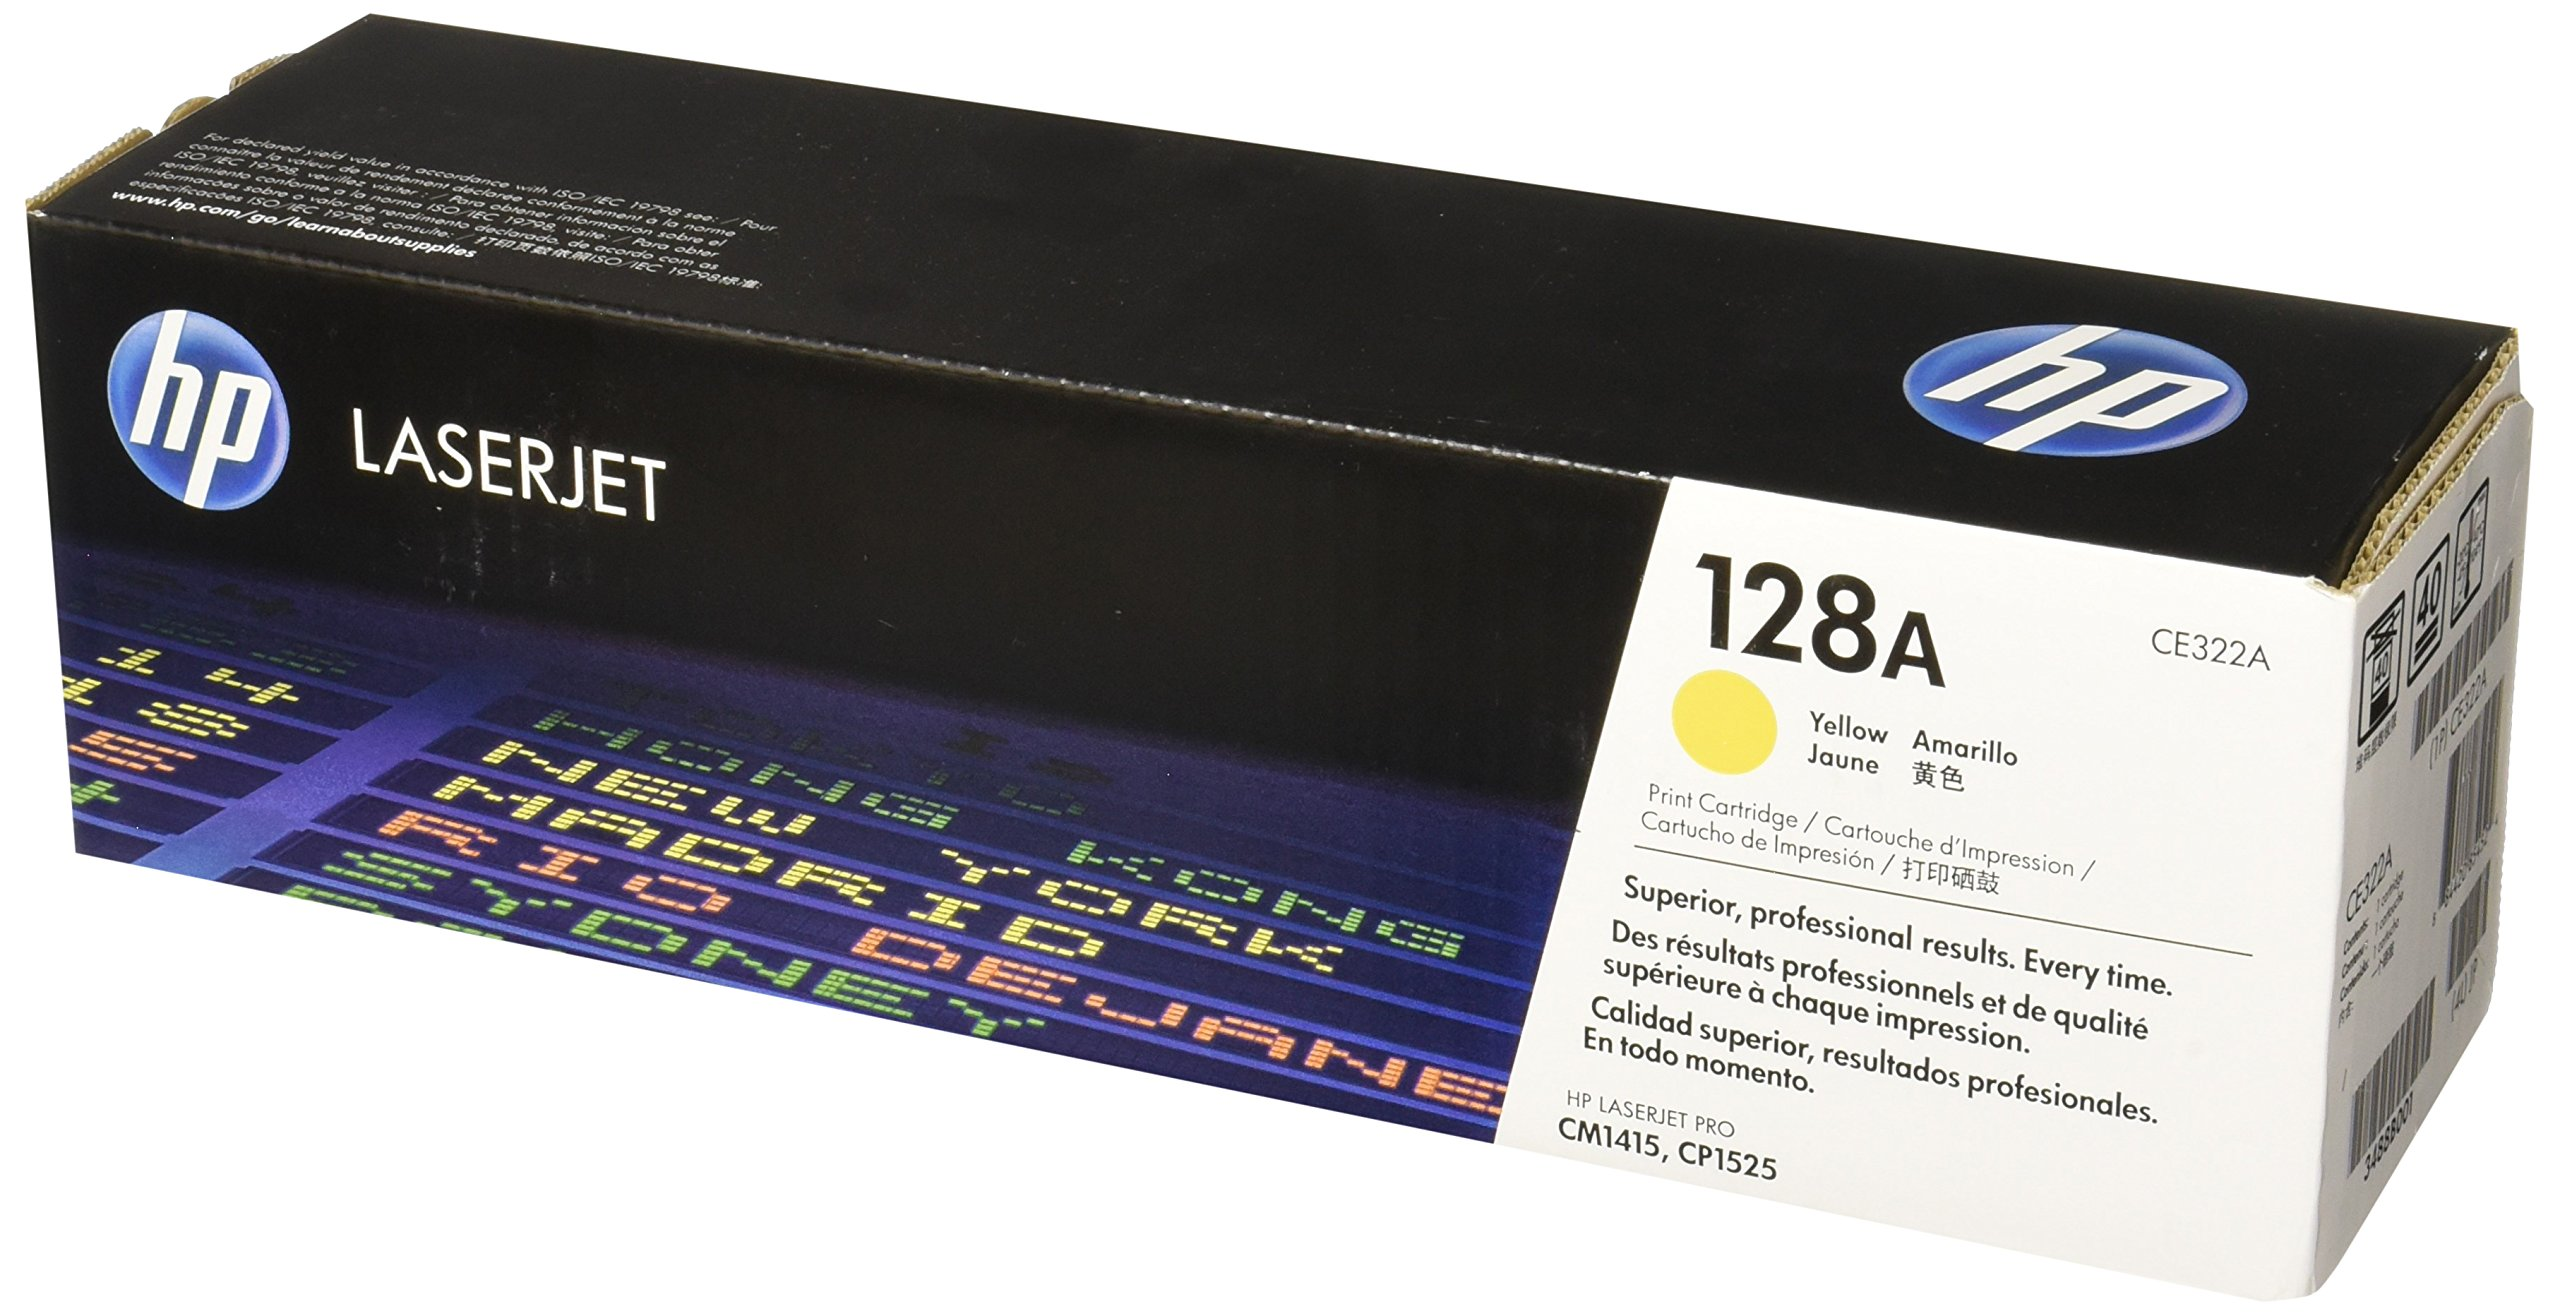 HP 128A (CE322A) Yellow Original Toner Cartridge for HP LaserJet Pro CM1415 CP1525